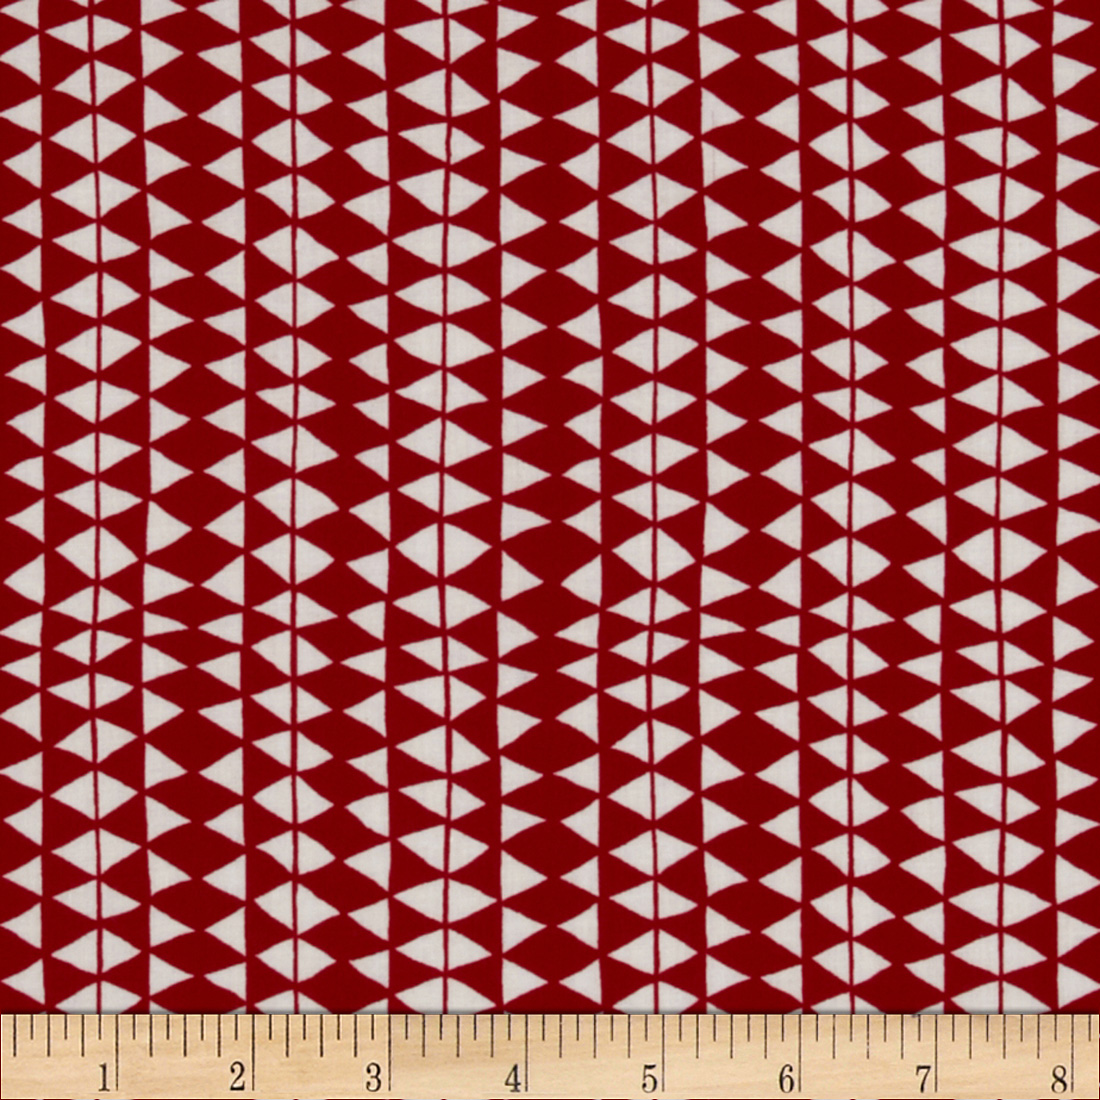 In the Forest Organic Woolen Blanket Red/White Fabric